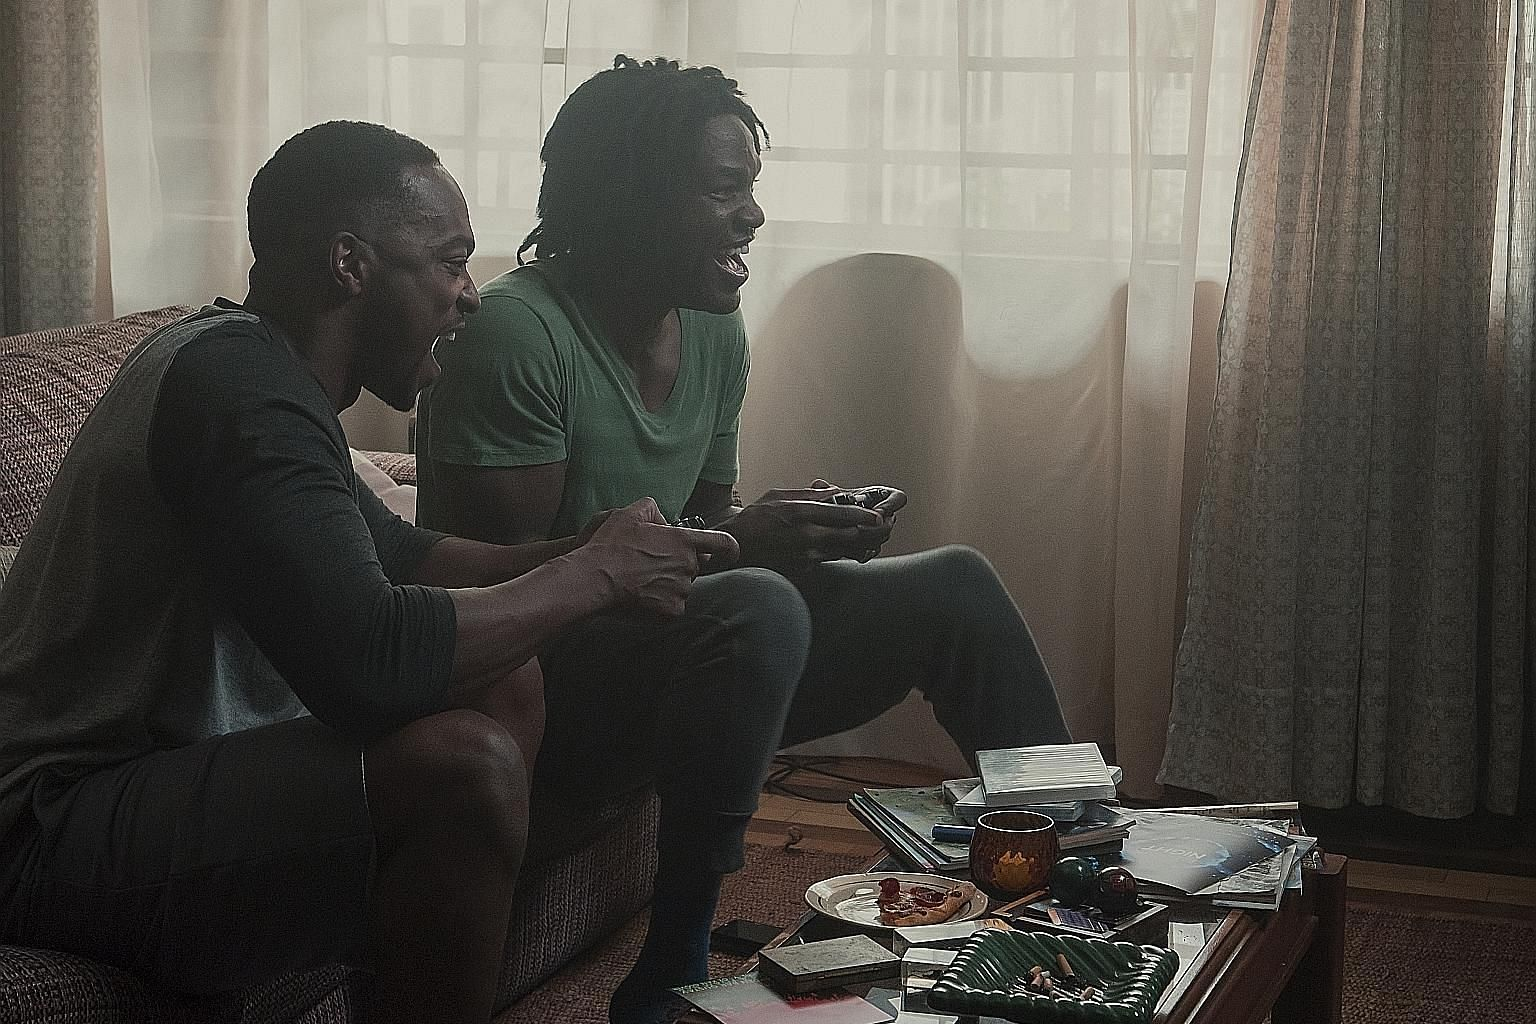 Anthony Mackie (far left) and Yahya Abdul-Mateen II in Black Mirror 5 episode Striking Vipers. May Hong and Garcia play a lesbian couple adjusting to the fact that one of them is transgender in Armistead Maupin's Tales Of The City.